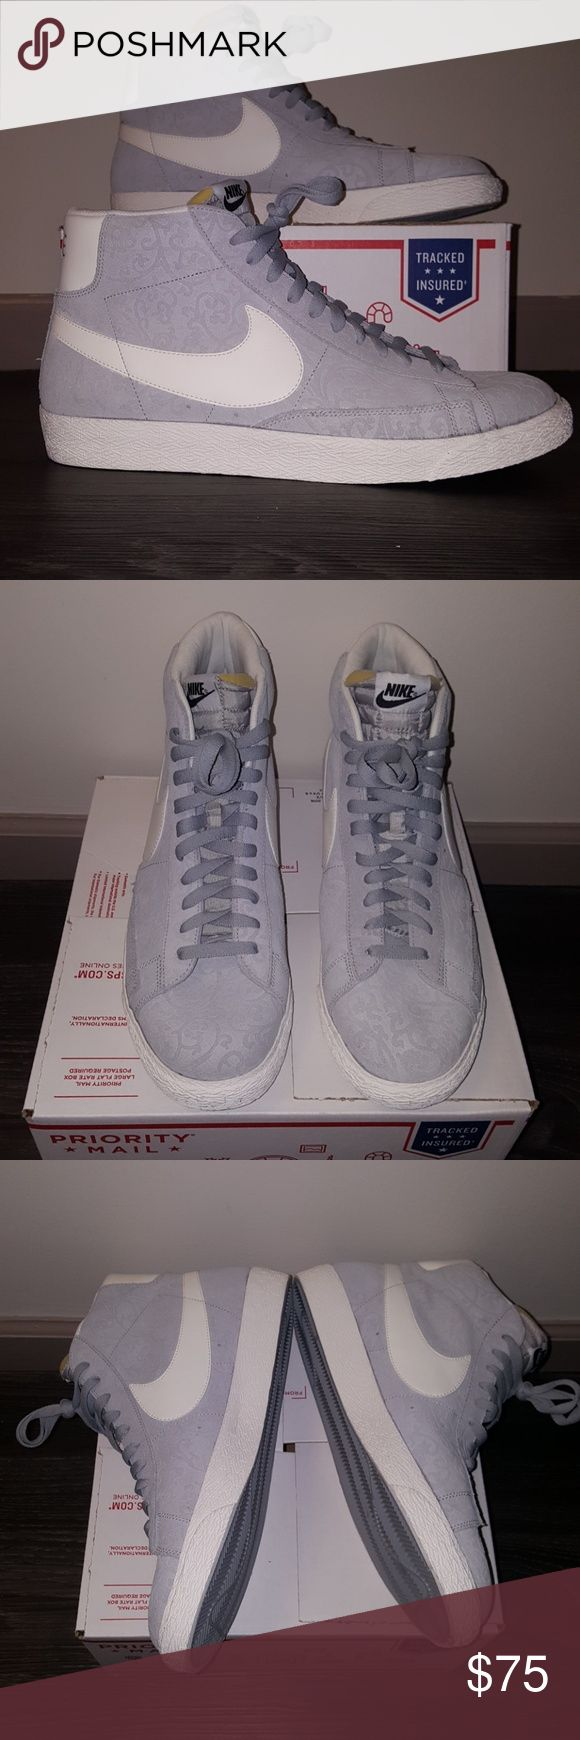 Nike NIKE Blazer  Grey/ light Beige FRESH NEW! NEW! NEW! Vintage touch suede with paisley design.  Nike swoosh Nike Shoes Sneakers